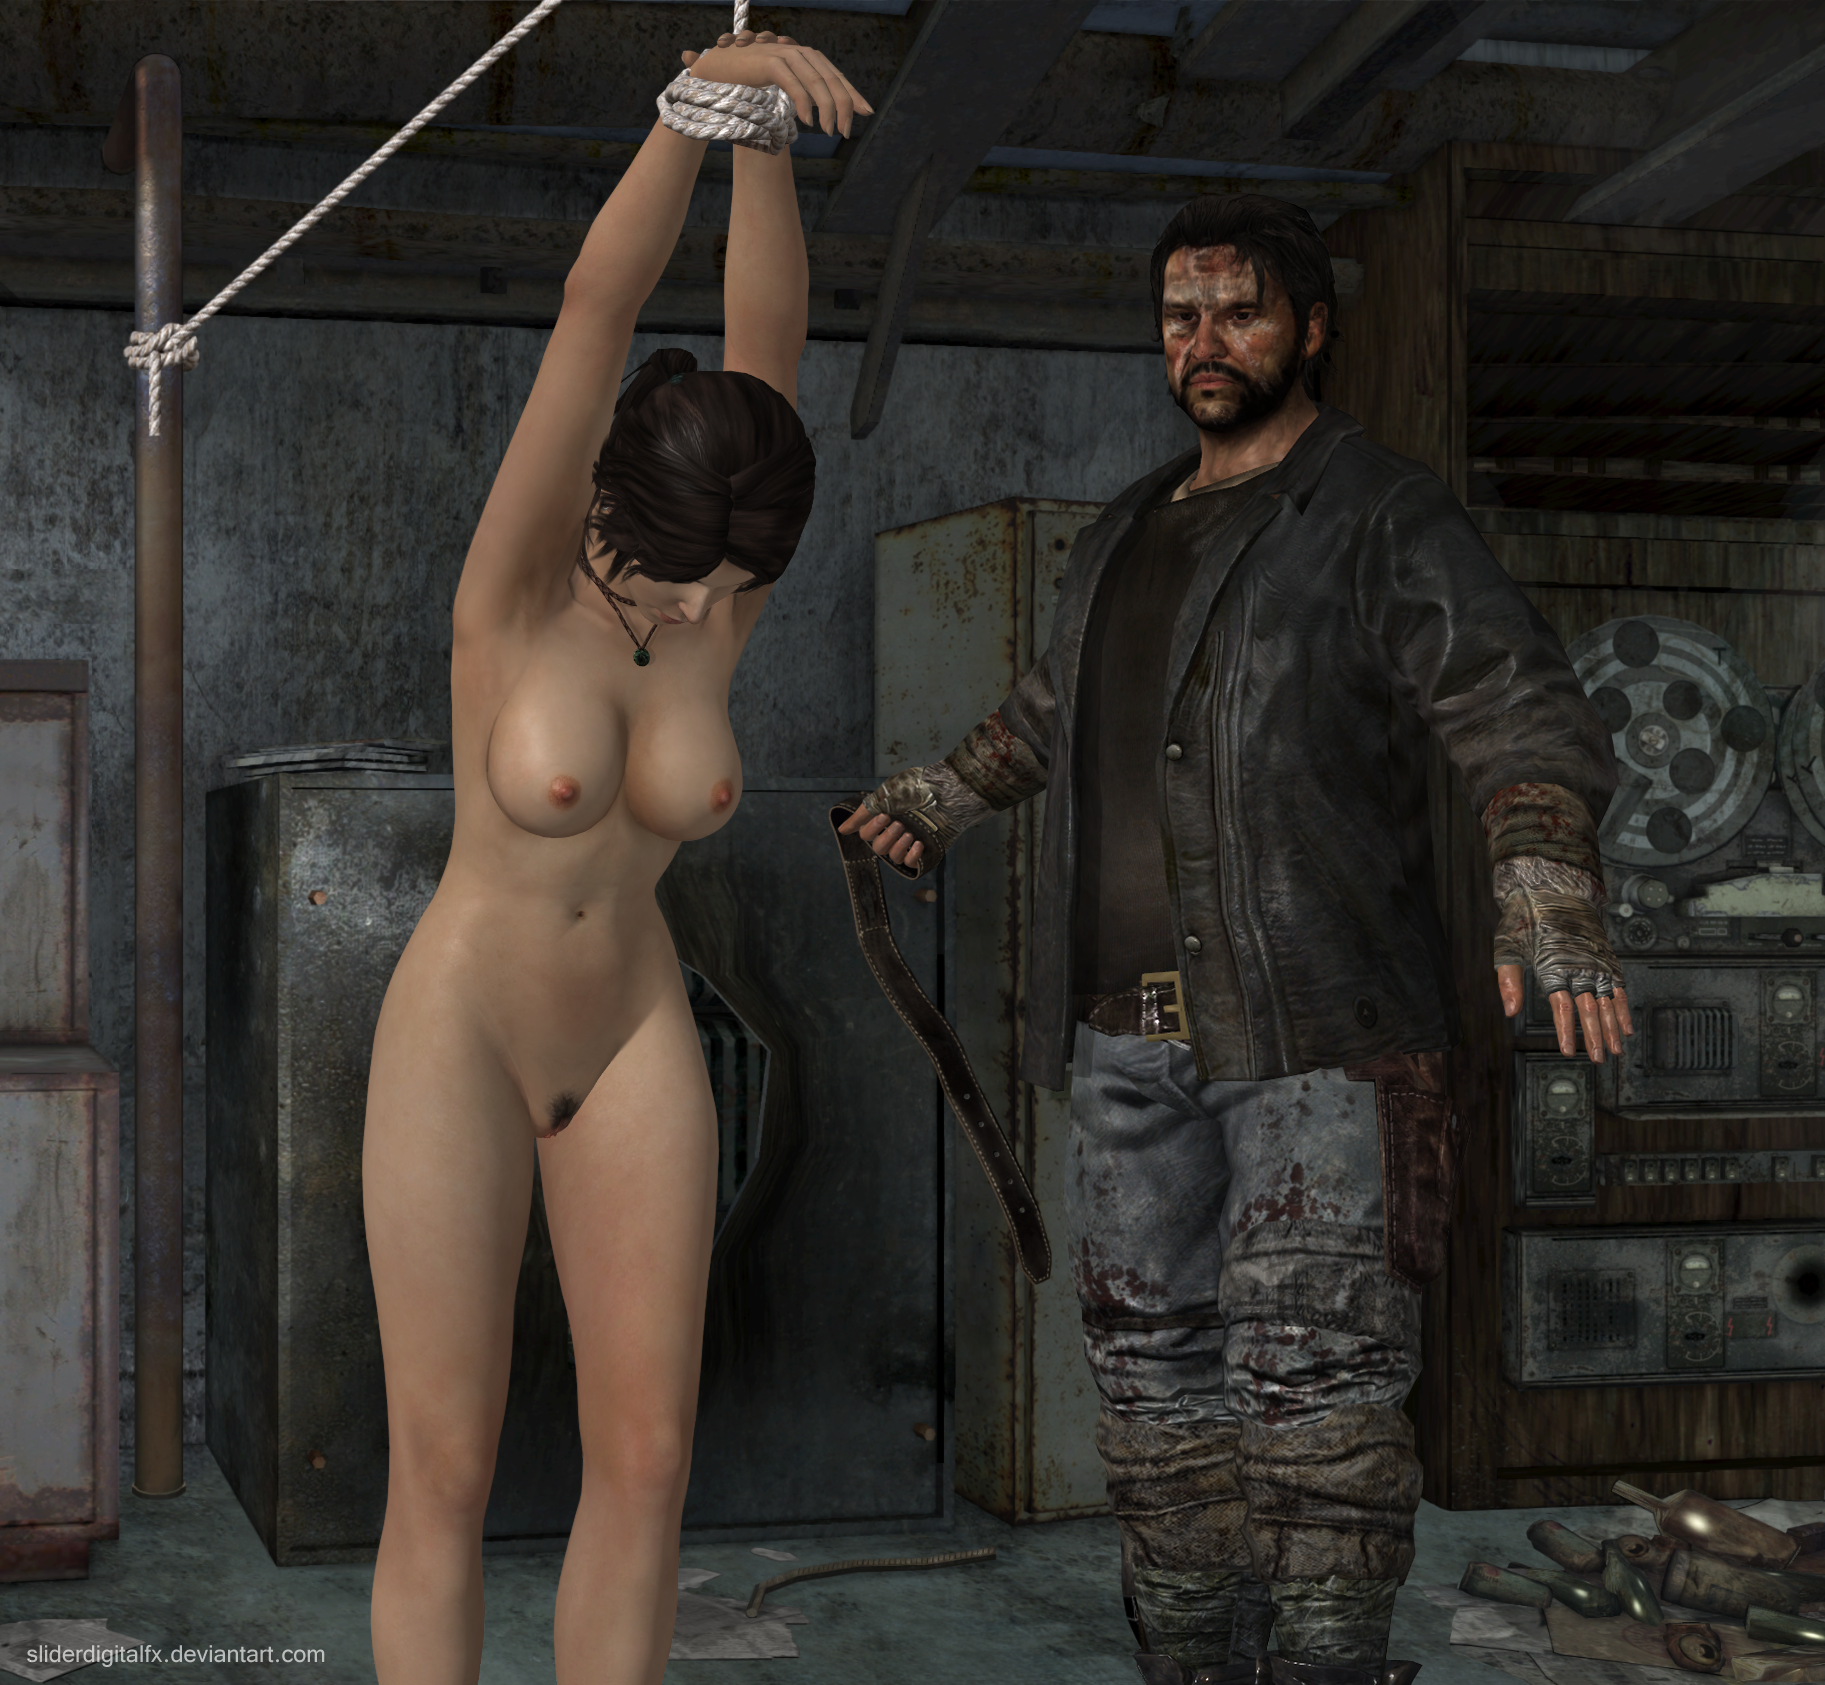 Tomb raider 2013 nude mod free downlode  sexy photo